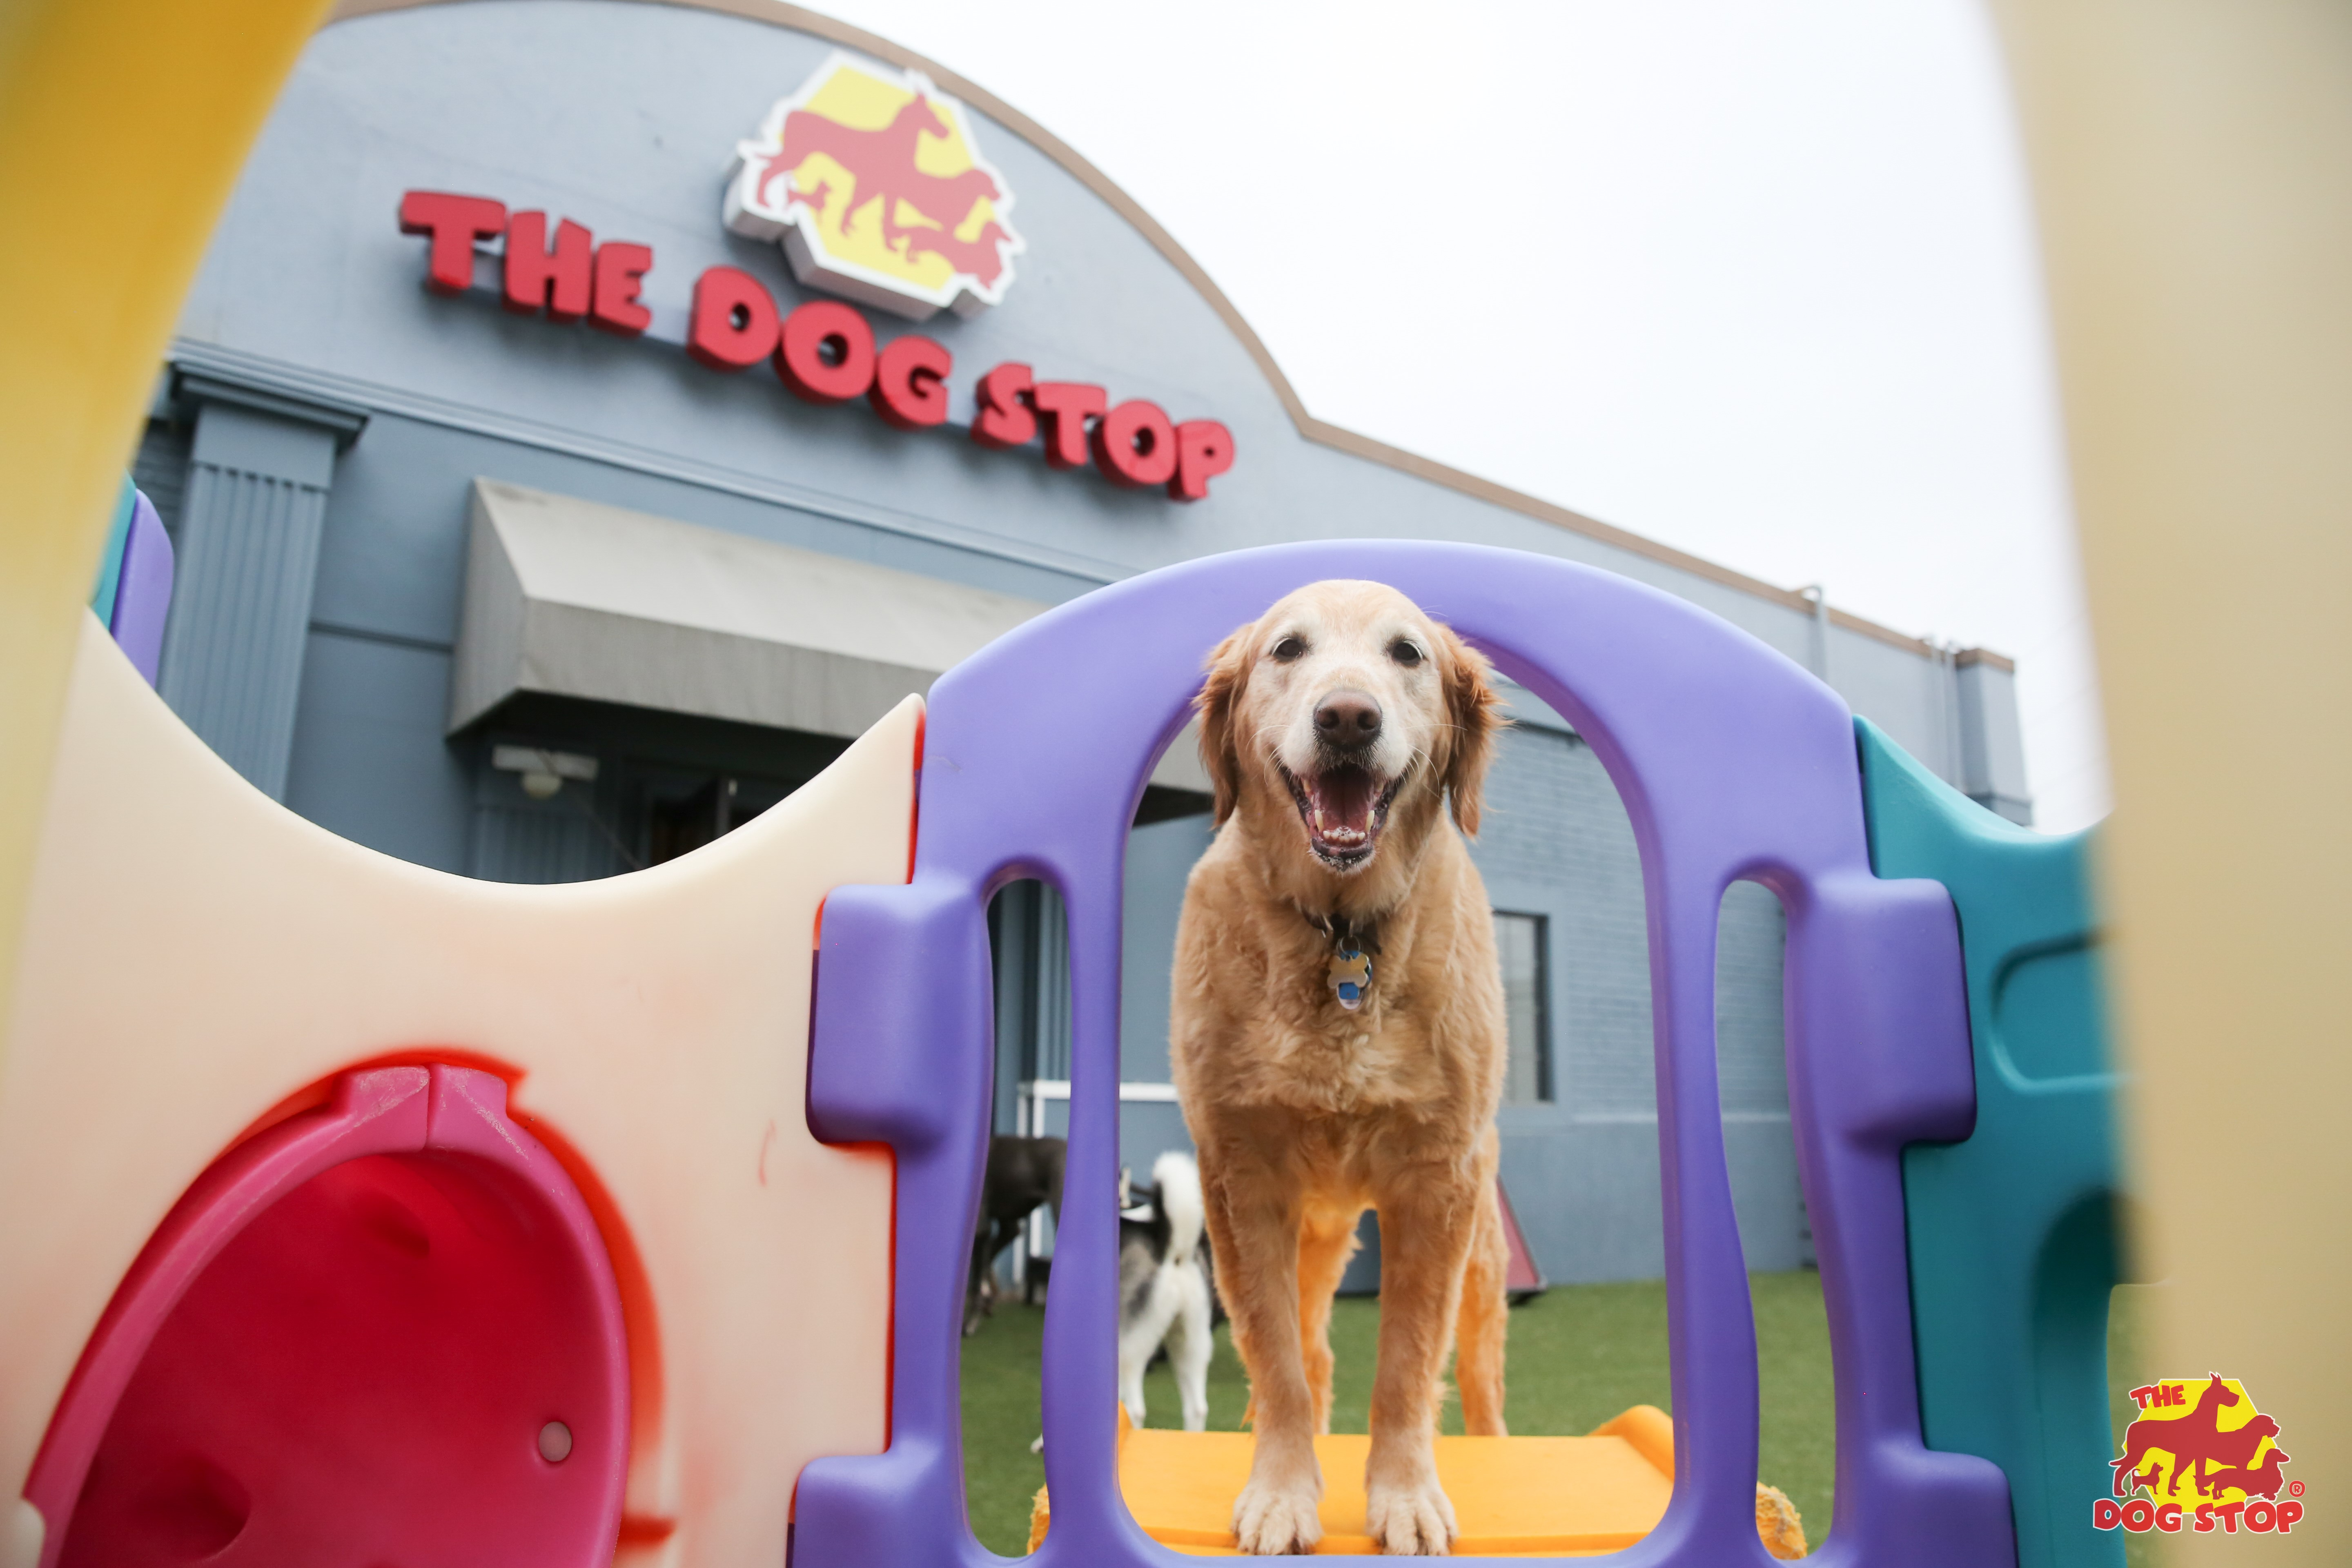 f42a6e06474 Dog About Town: Checking out new spots and more things to do | Pets |  Dallas News